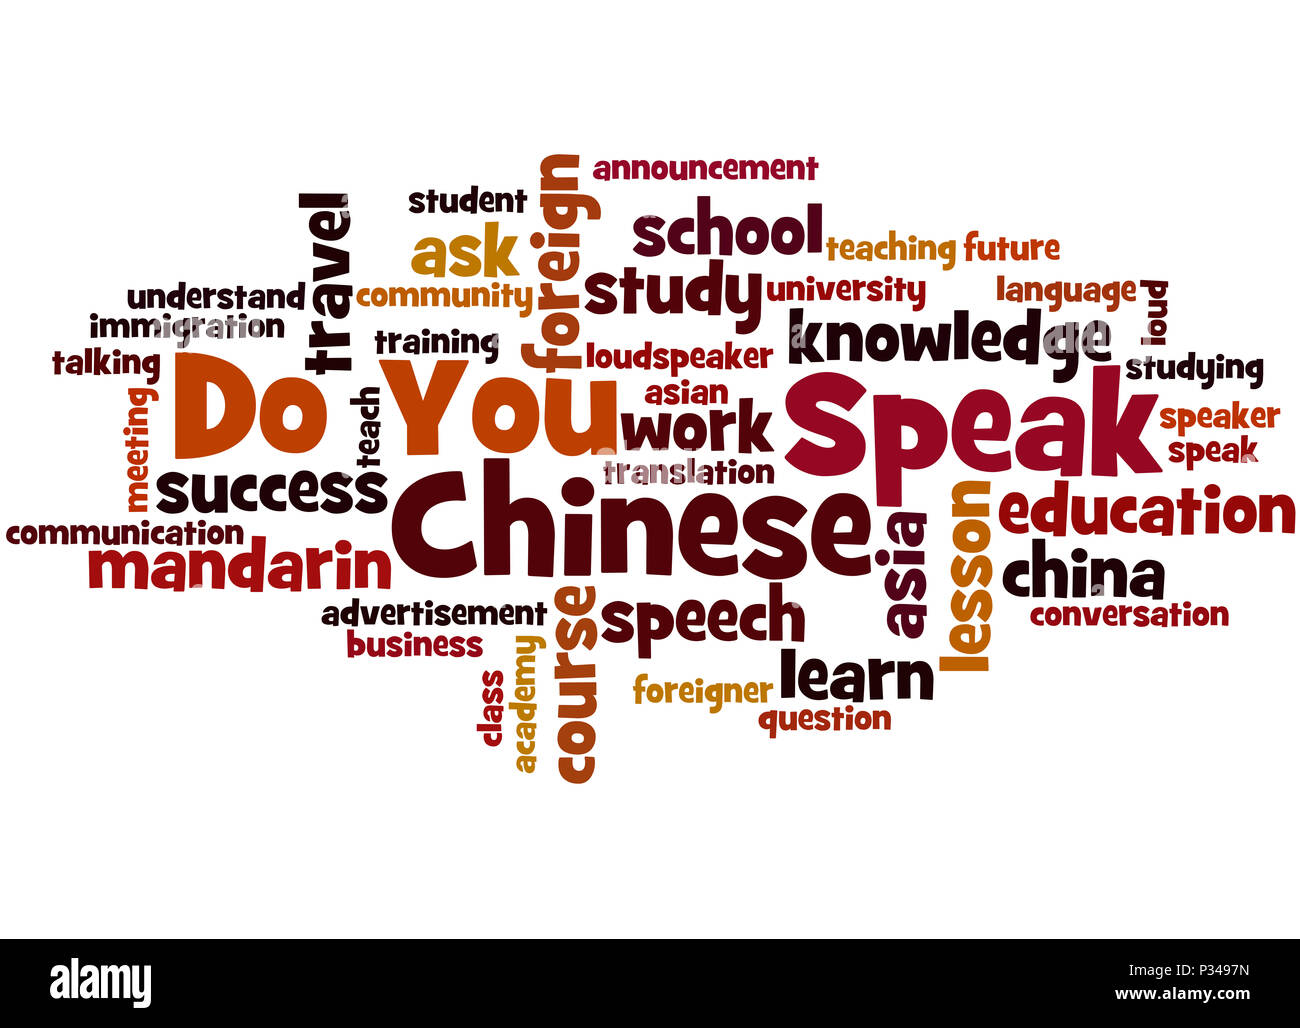 Do You Speak Chinese, word cloud concept on white background. - Stock Image